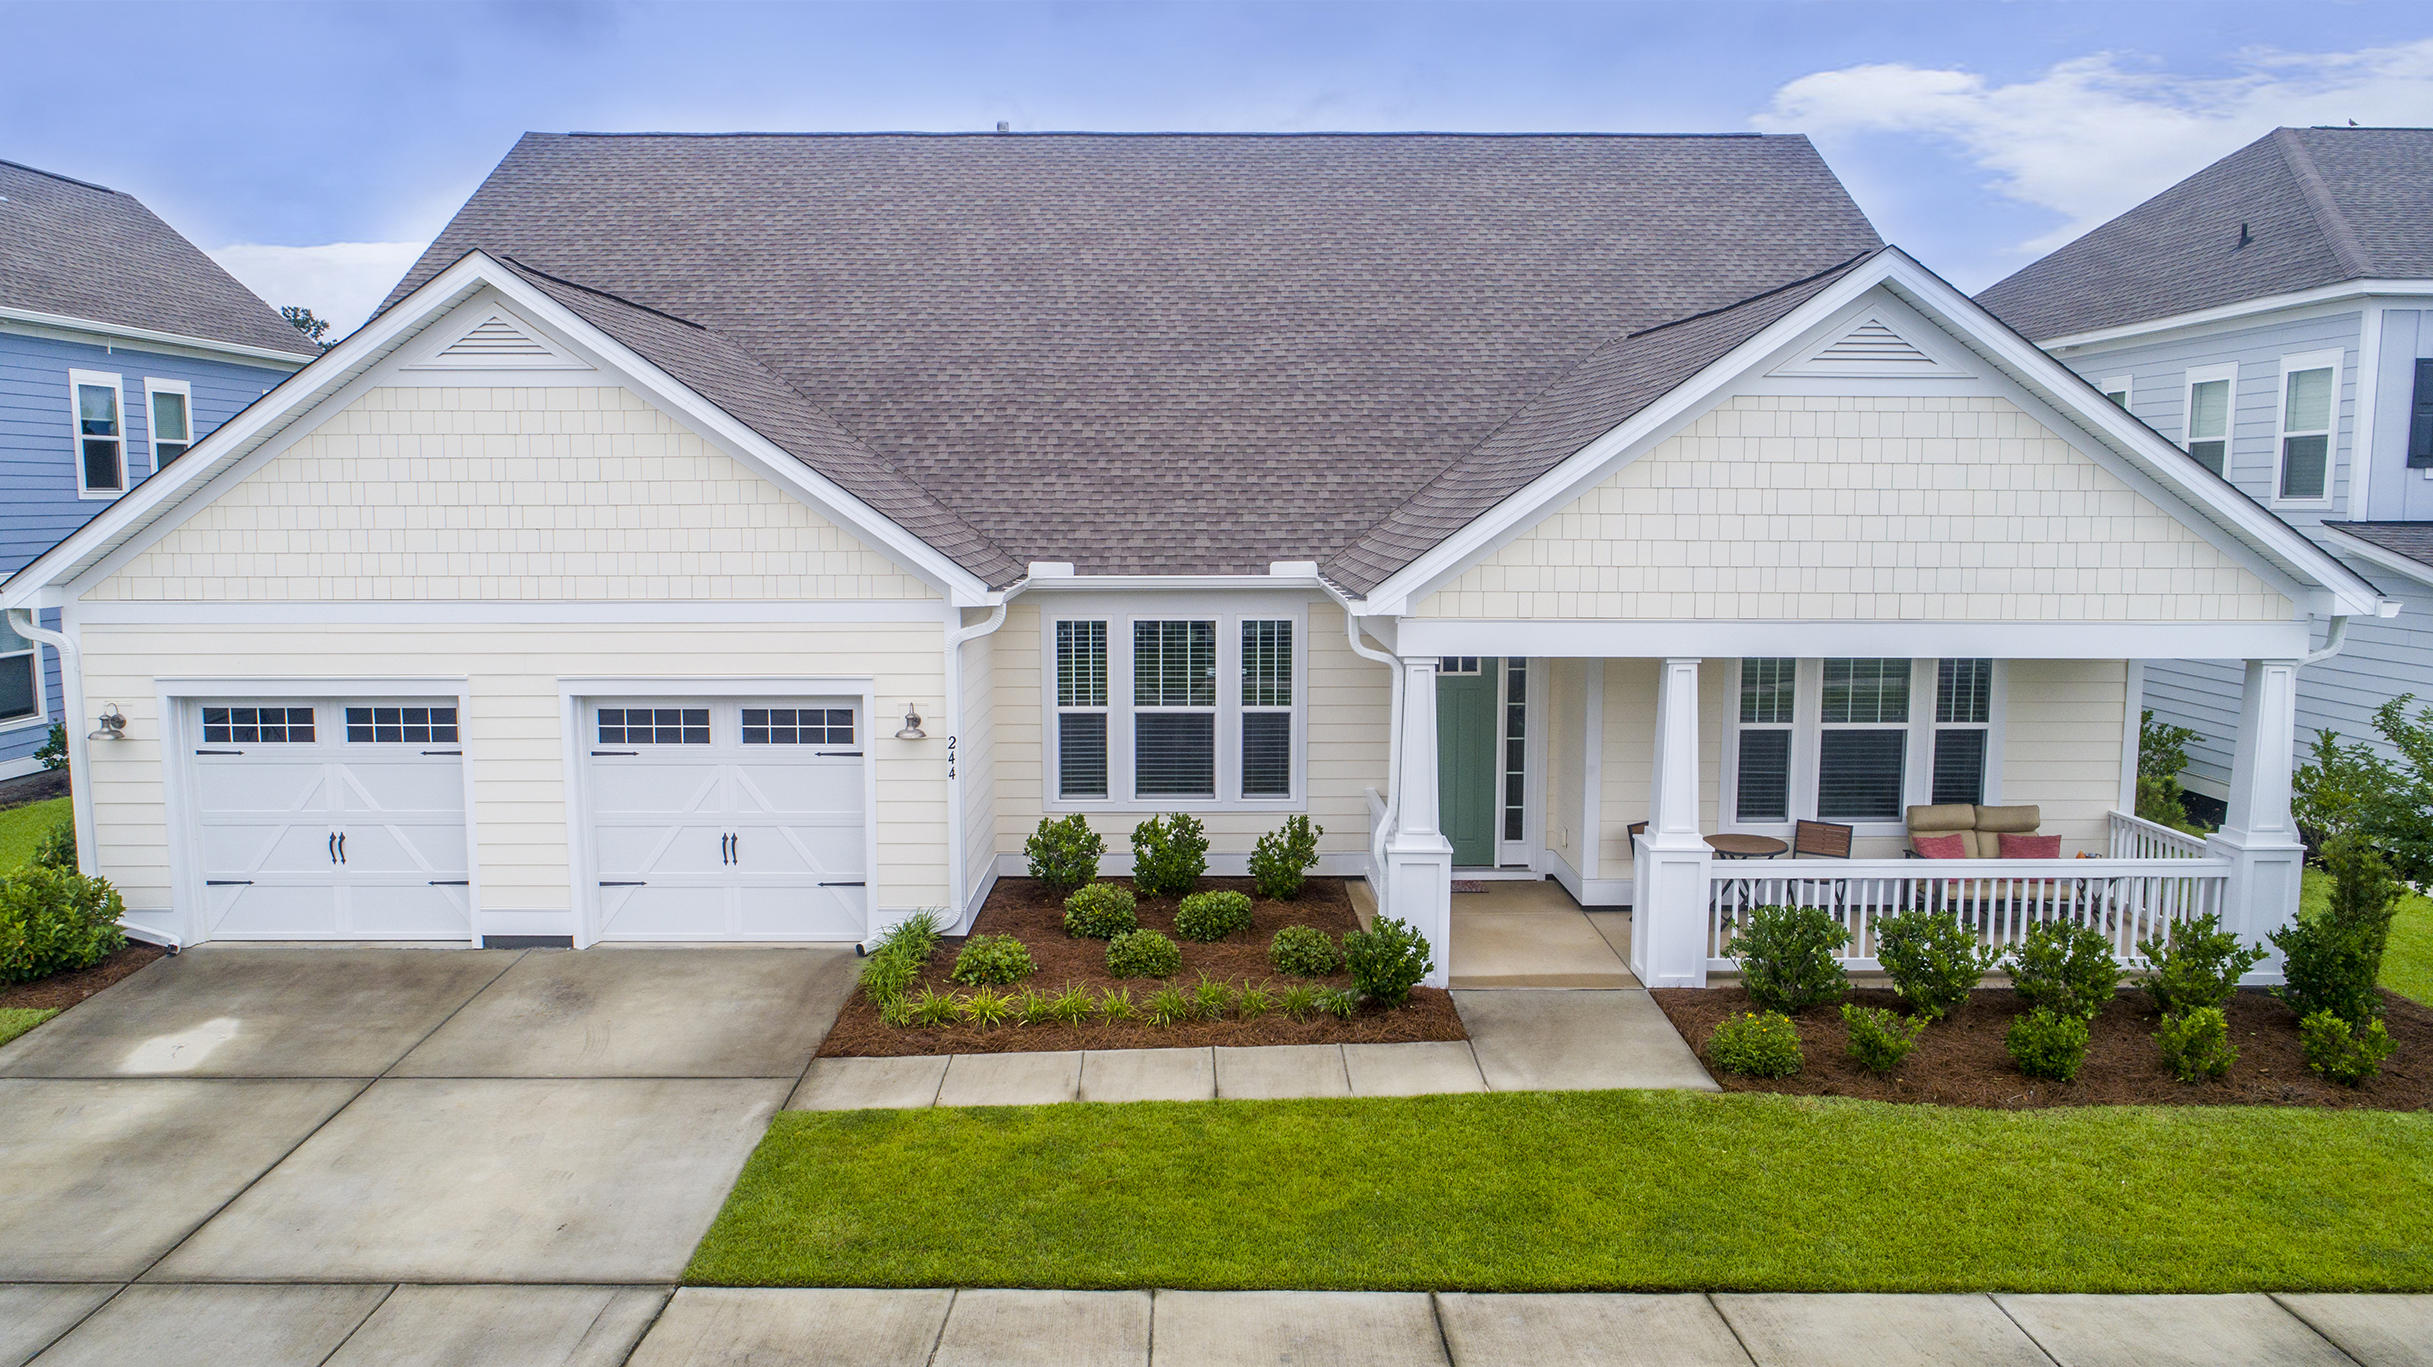 244 Warbler Way Summerville, SC 29483